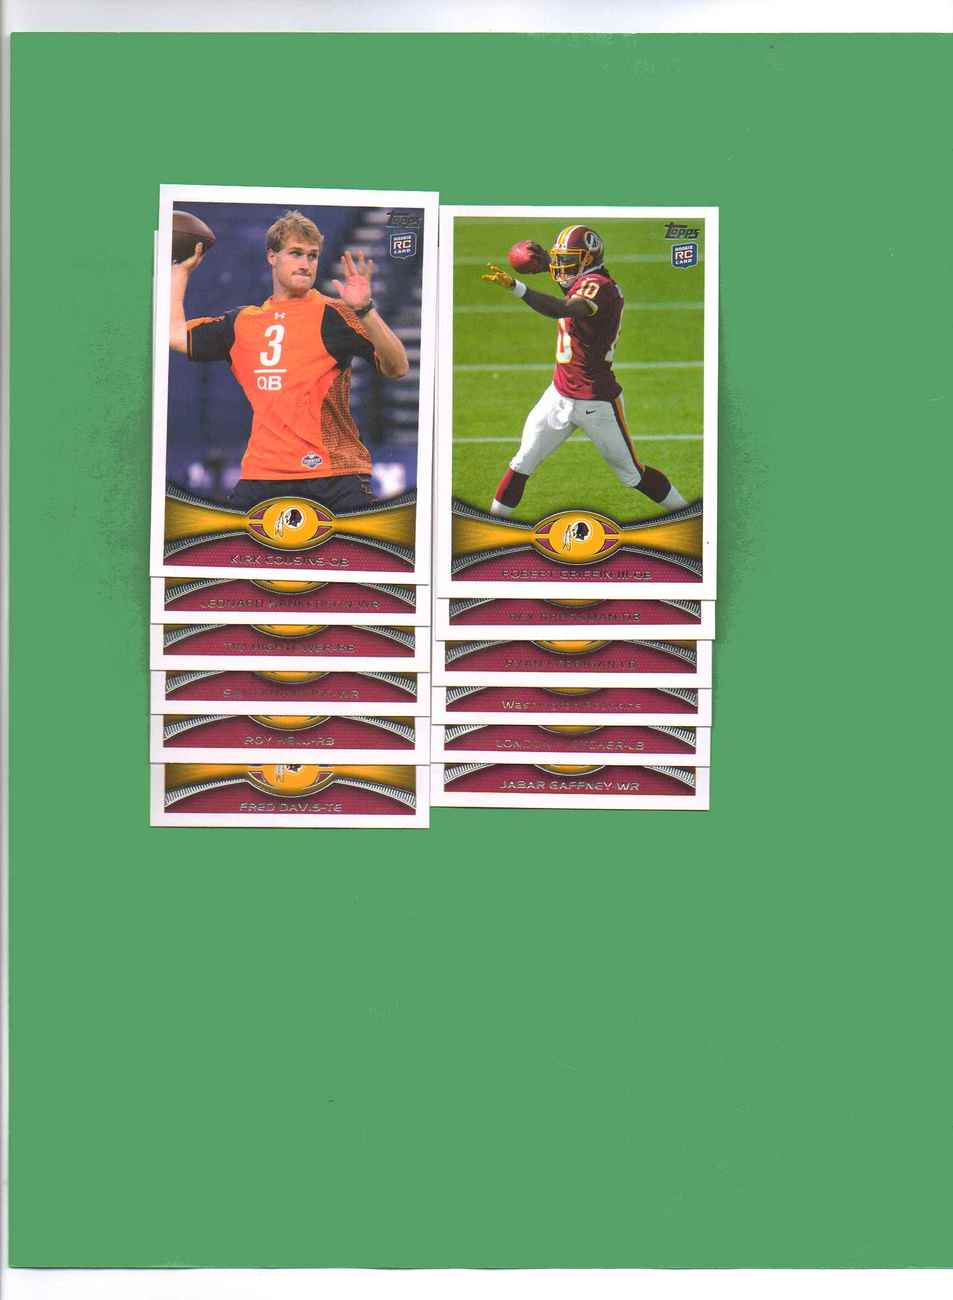 Primary image for 2012 Topps Washington Redskins Football Set